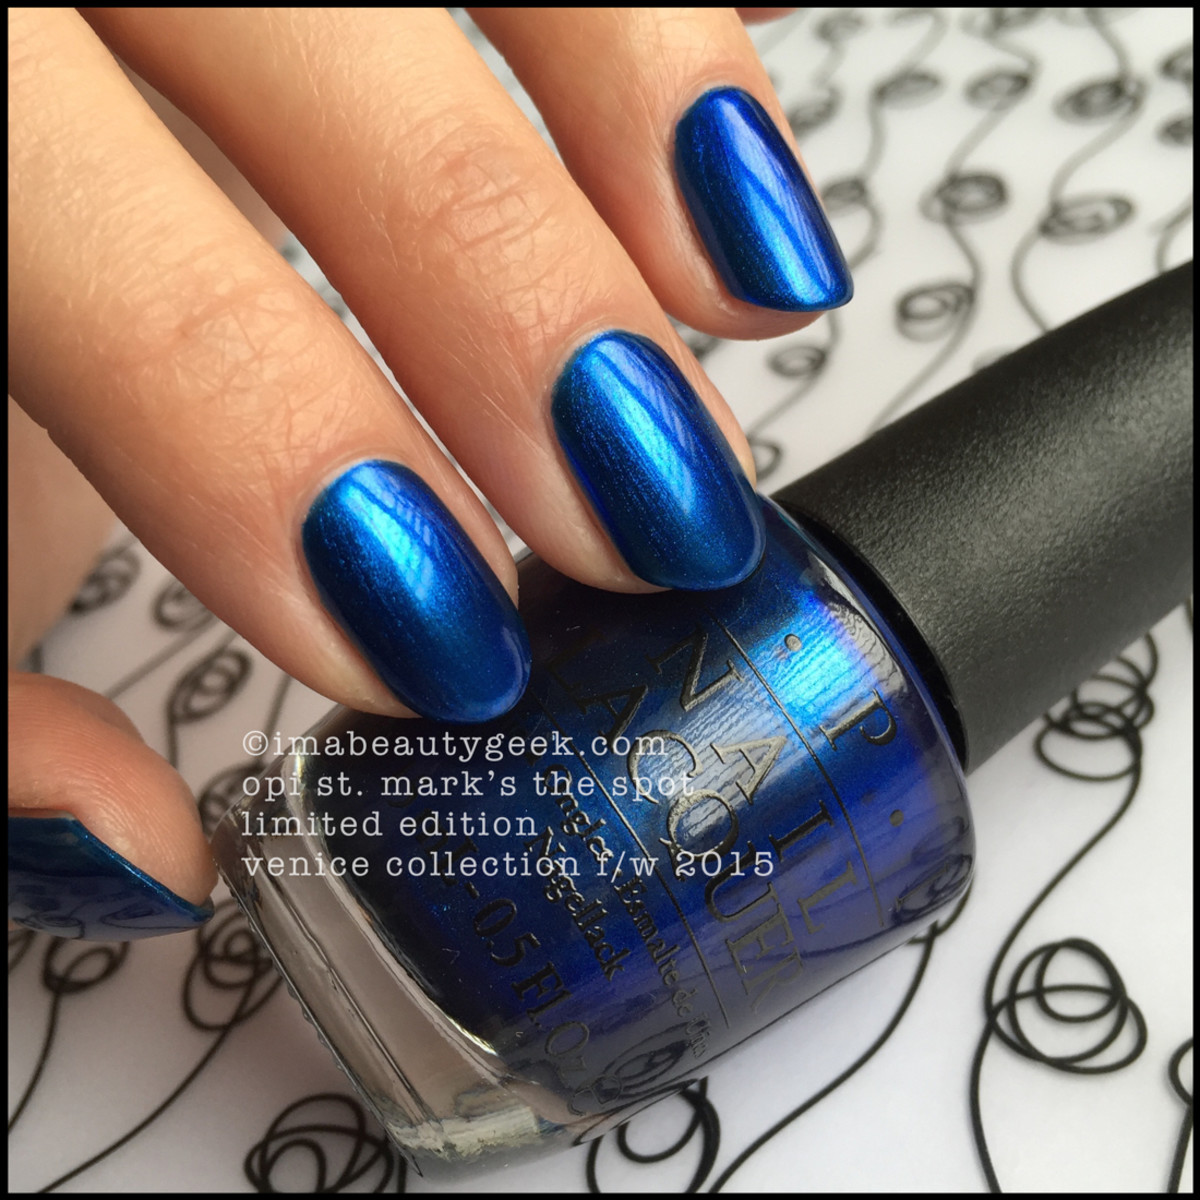 OPI Venice Swatches OPI St Marks the Spot Beautygeeks